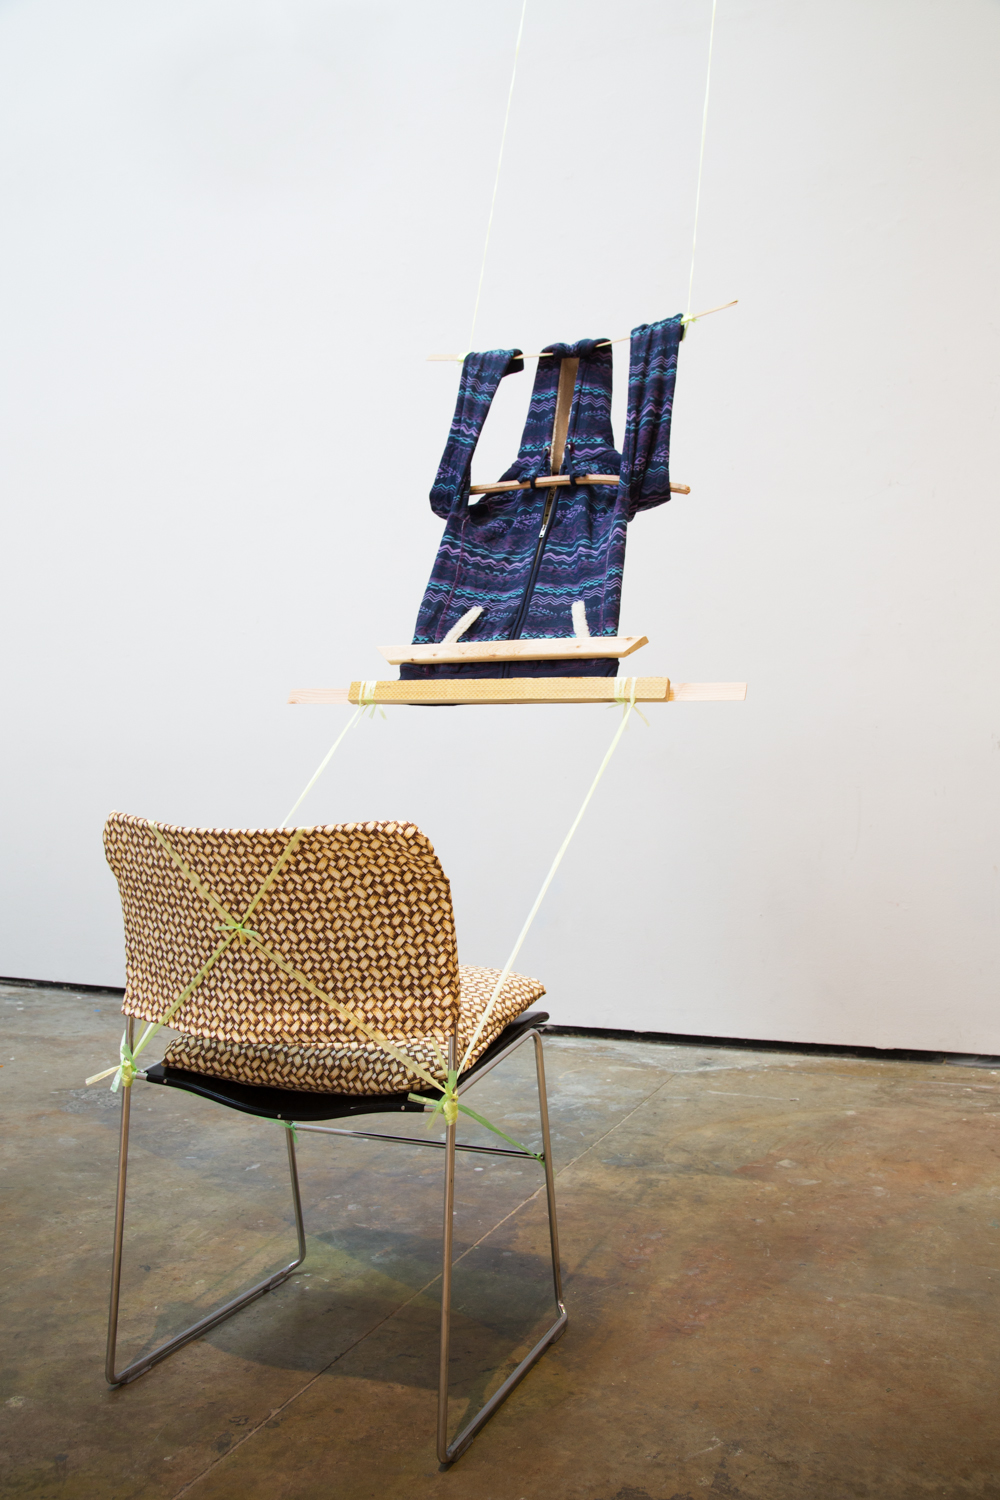 Loom, 2014, hoodie, plastic chord, wood, custom Banig-print fabric chair covering, Yale critique chair, 240 x 20 x 20 inches